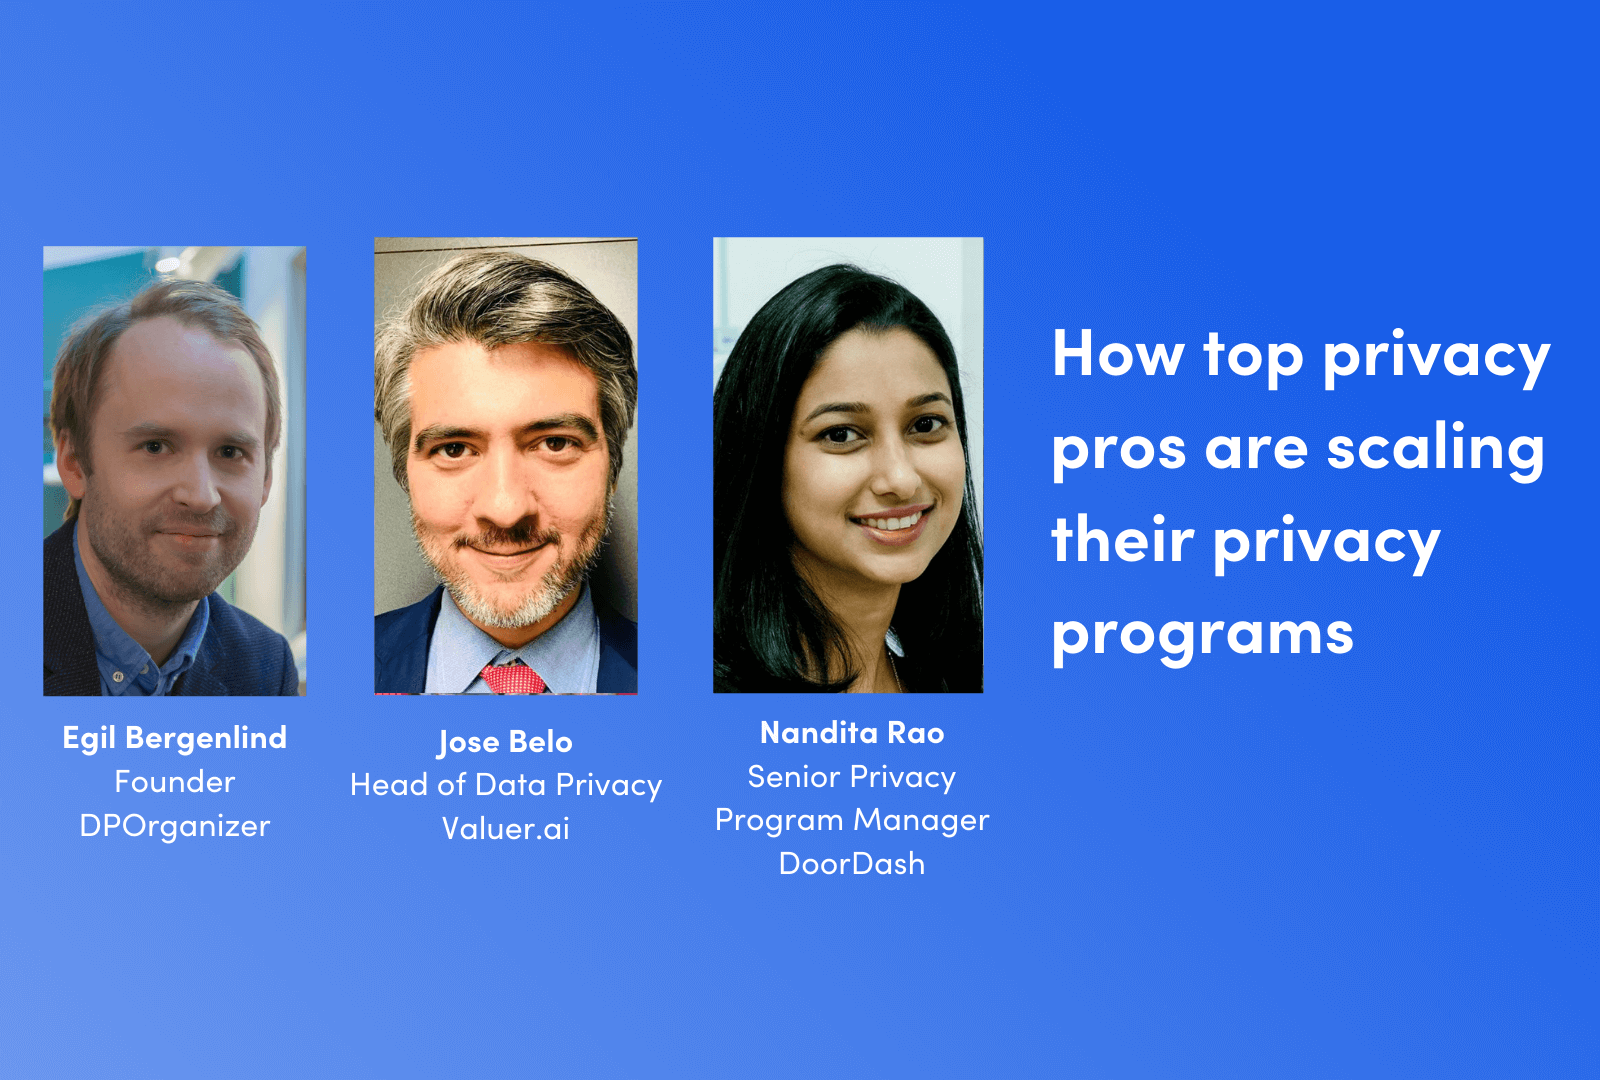 How top privacy pros are scaling their privacy programs